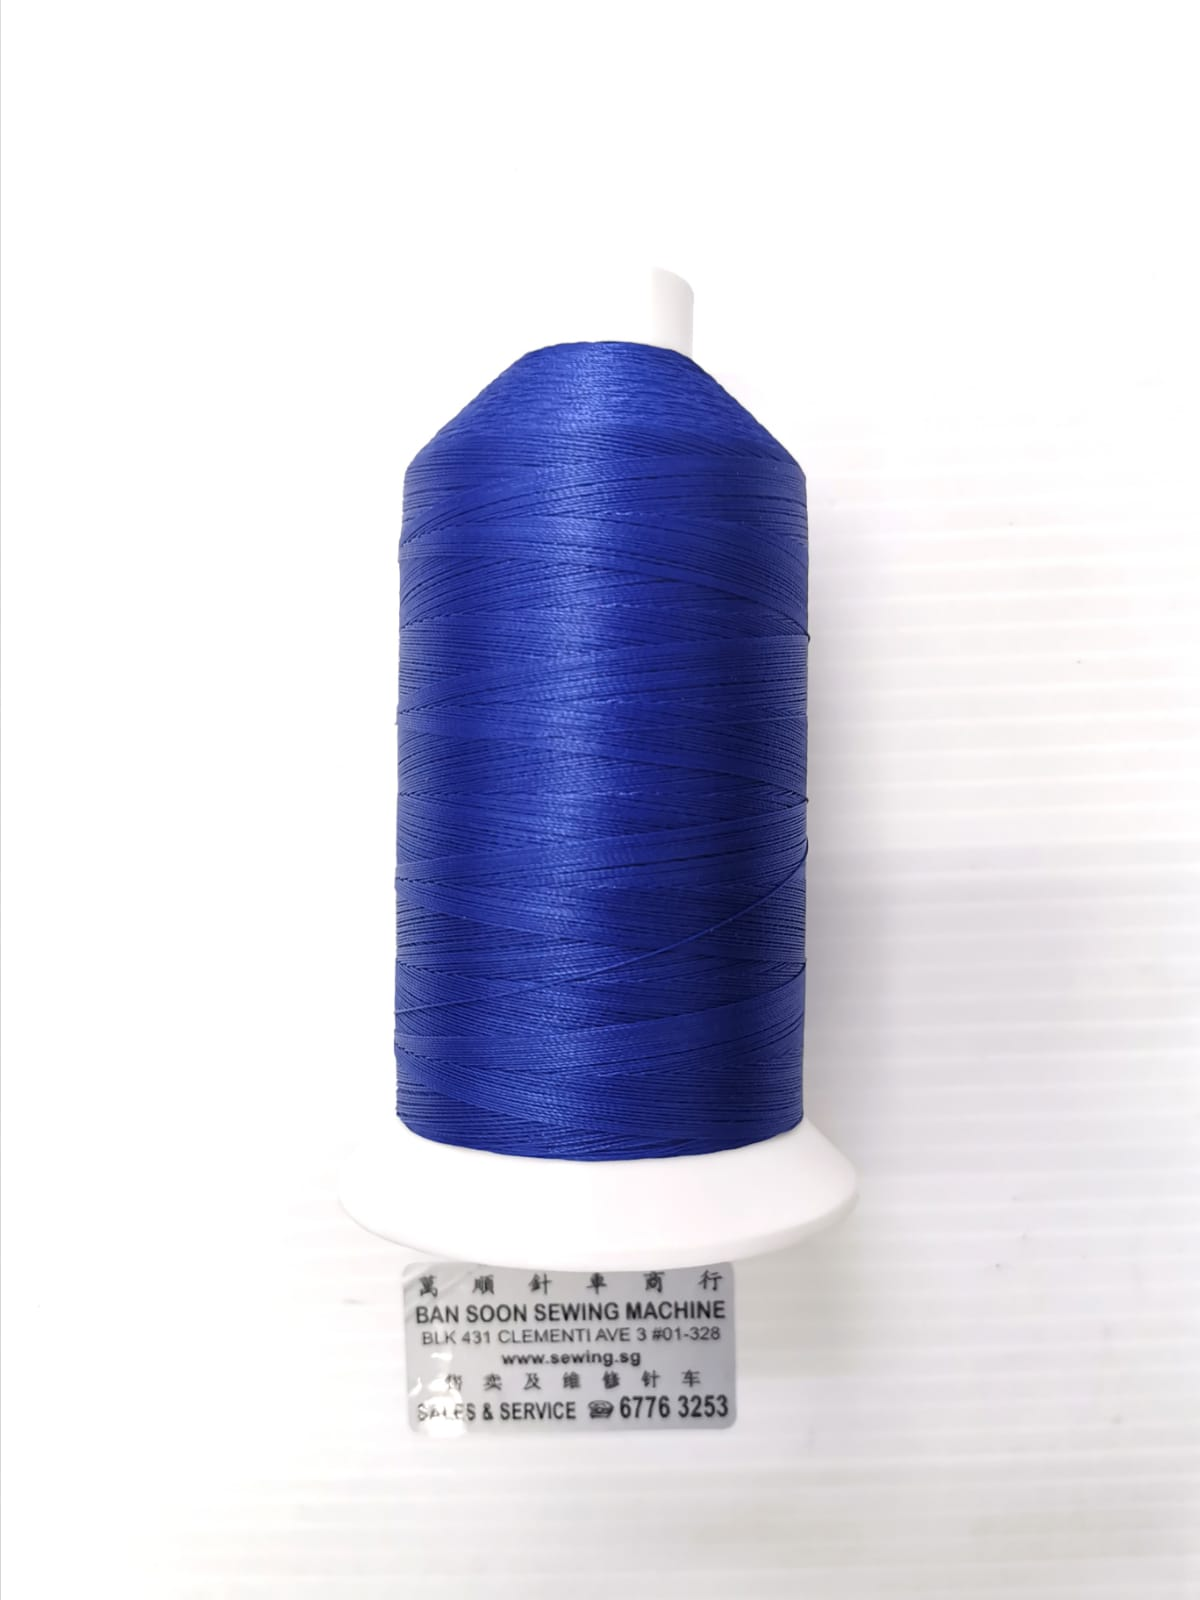 OUTDOOR SEWING THREADS, UV Resistance sewing thread. Specially produced for Shelters, Awnings and all outdoor sewing applications. SERABOND 30 V92 Royal Blue